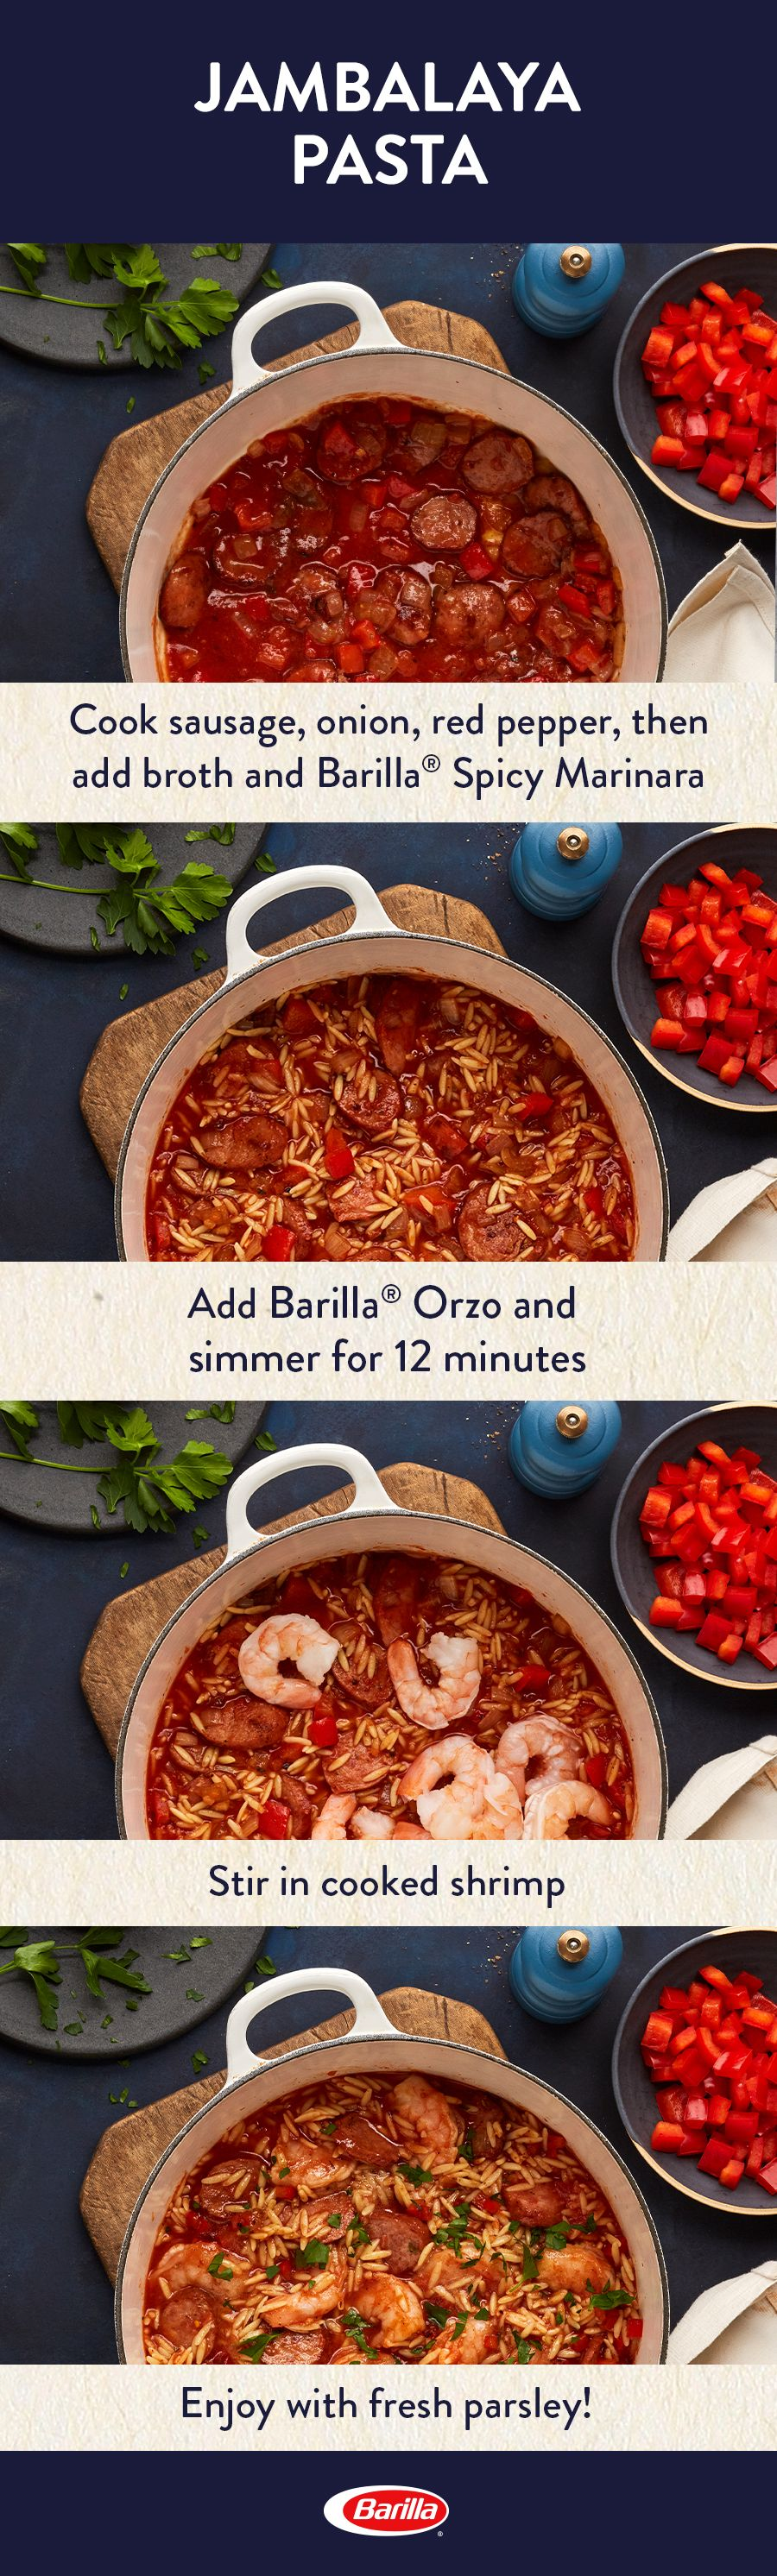 Create A Flavorful Jambalaya Pasta Meal With Our Spicy Marinara Sauce Save This Easy Recipe That Starts With Smoked Sausage Creole Seasoning And With Images Recipes Food